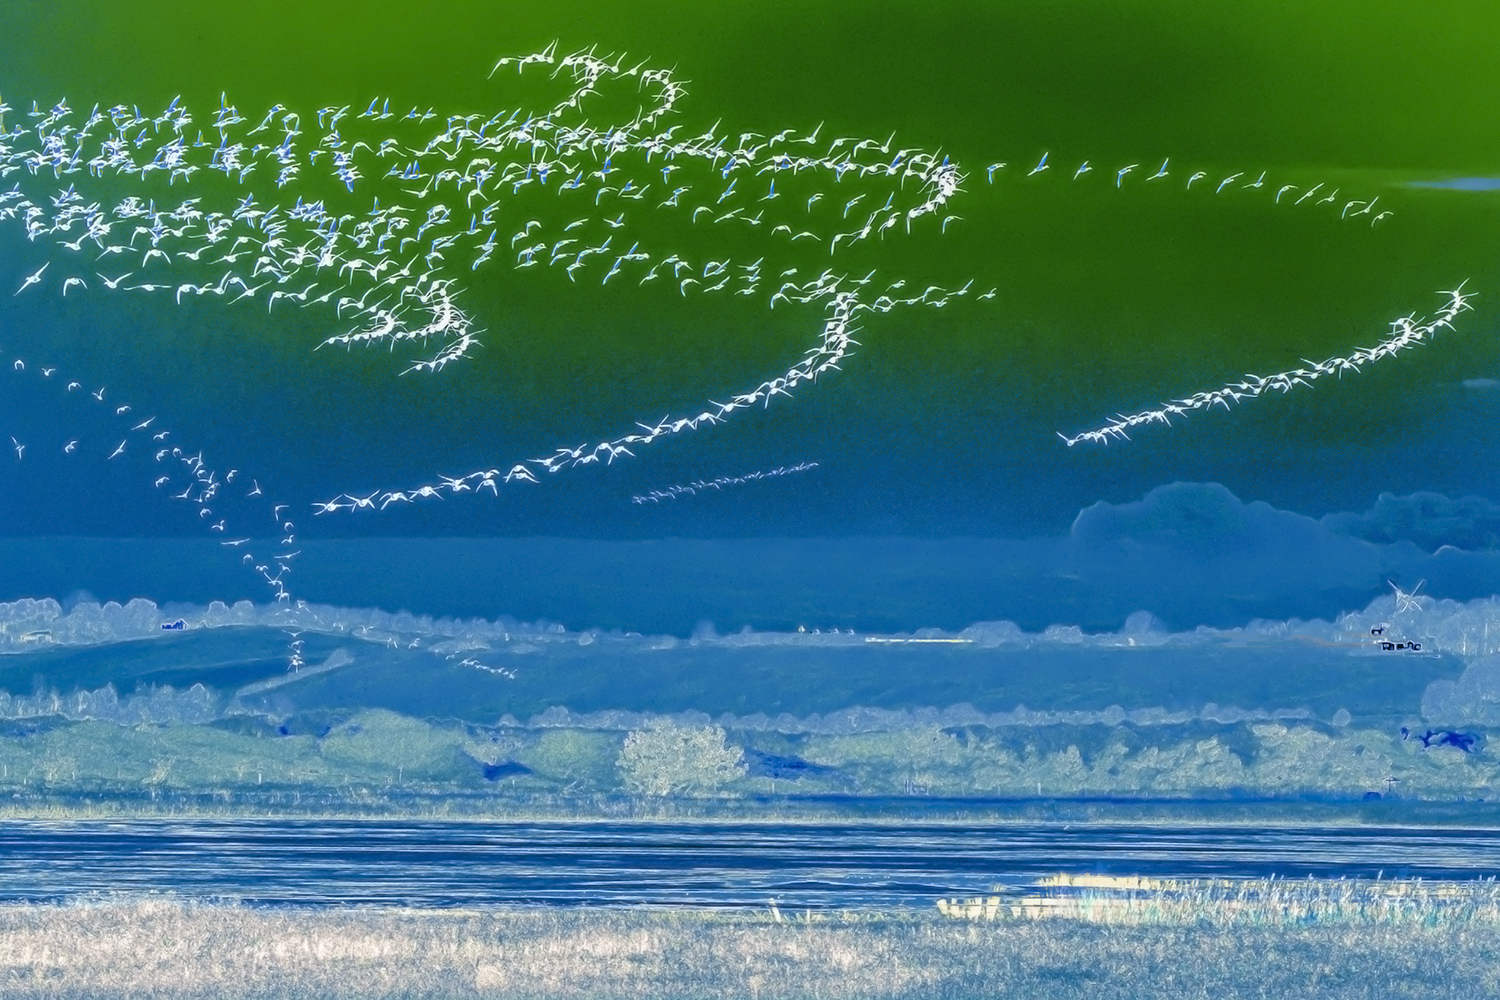 Steffen_Faisst_Traces in the Sky_Dream world_02.jpg